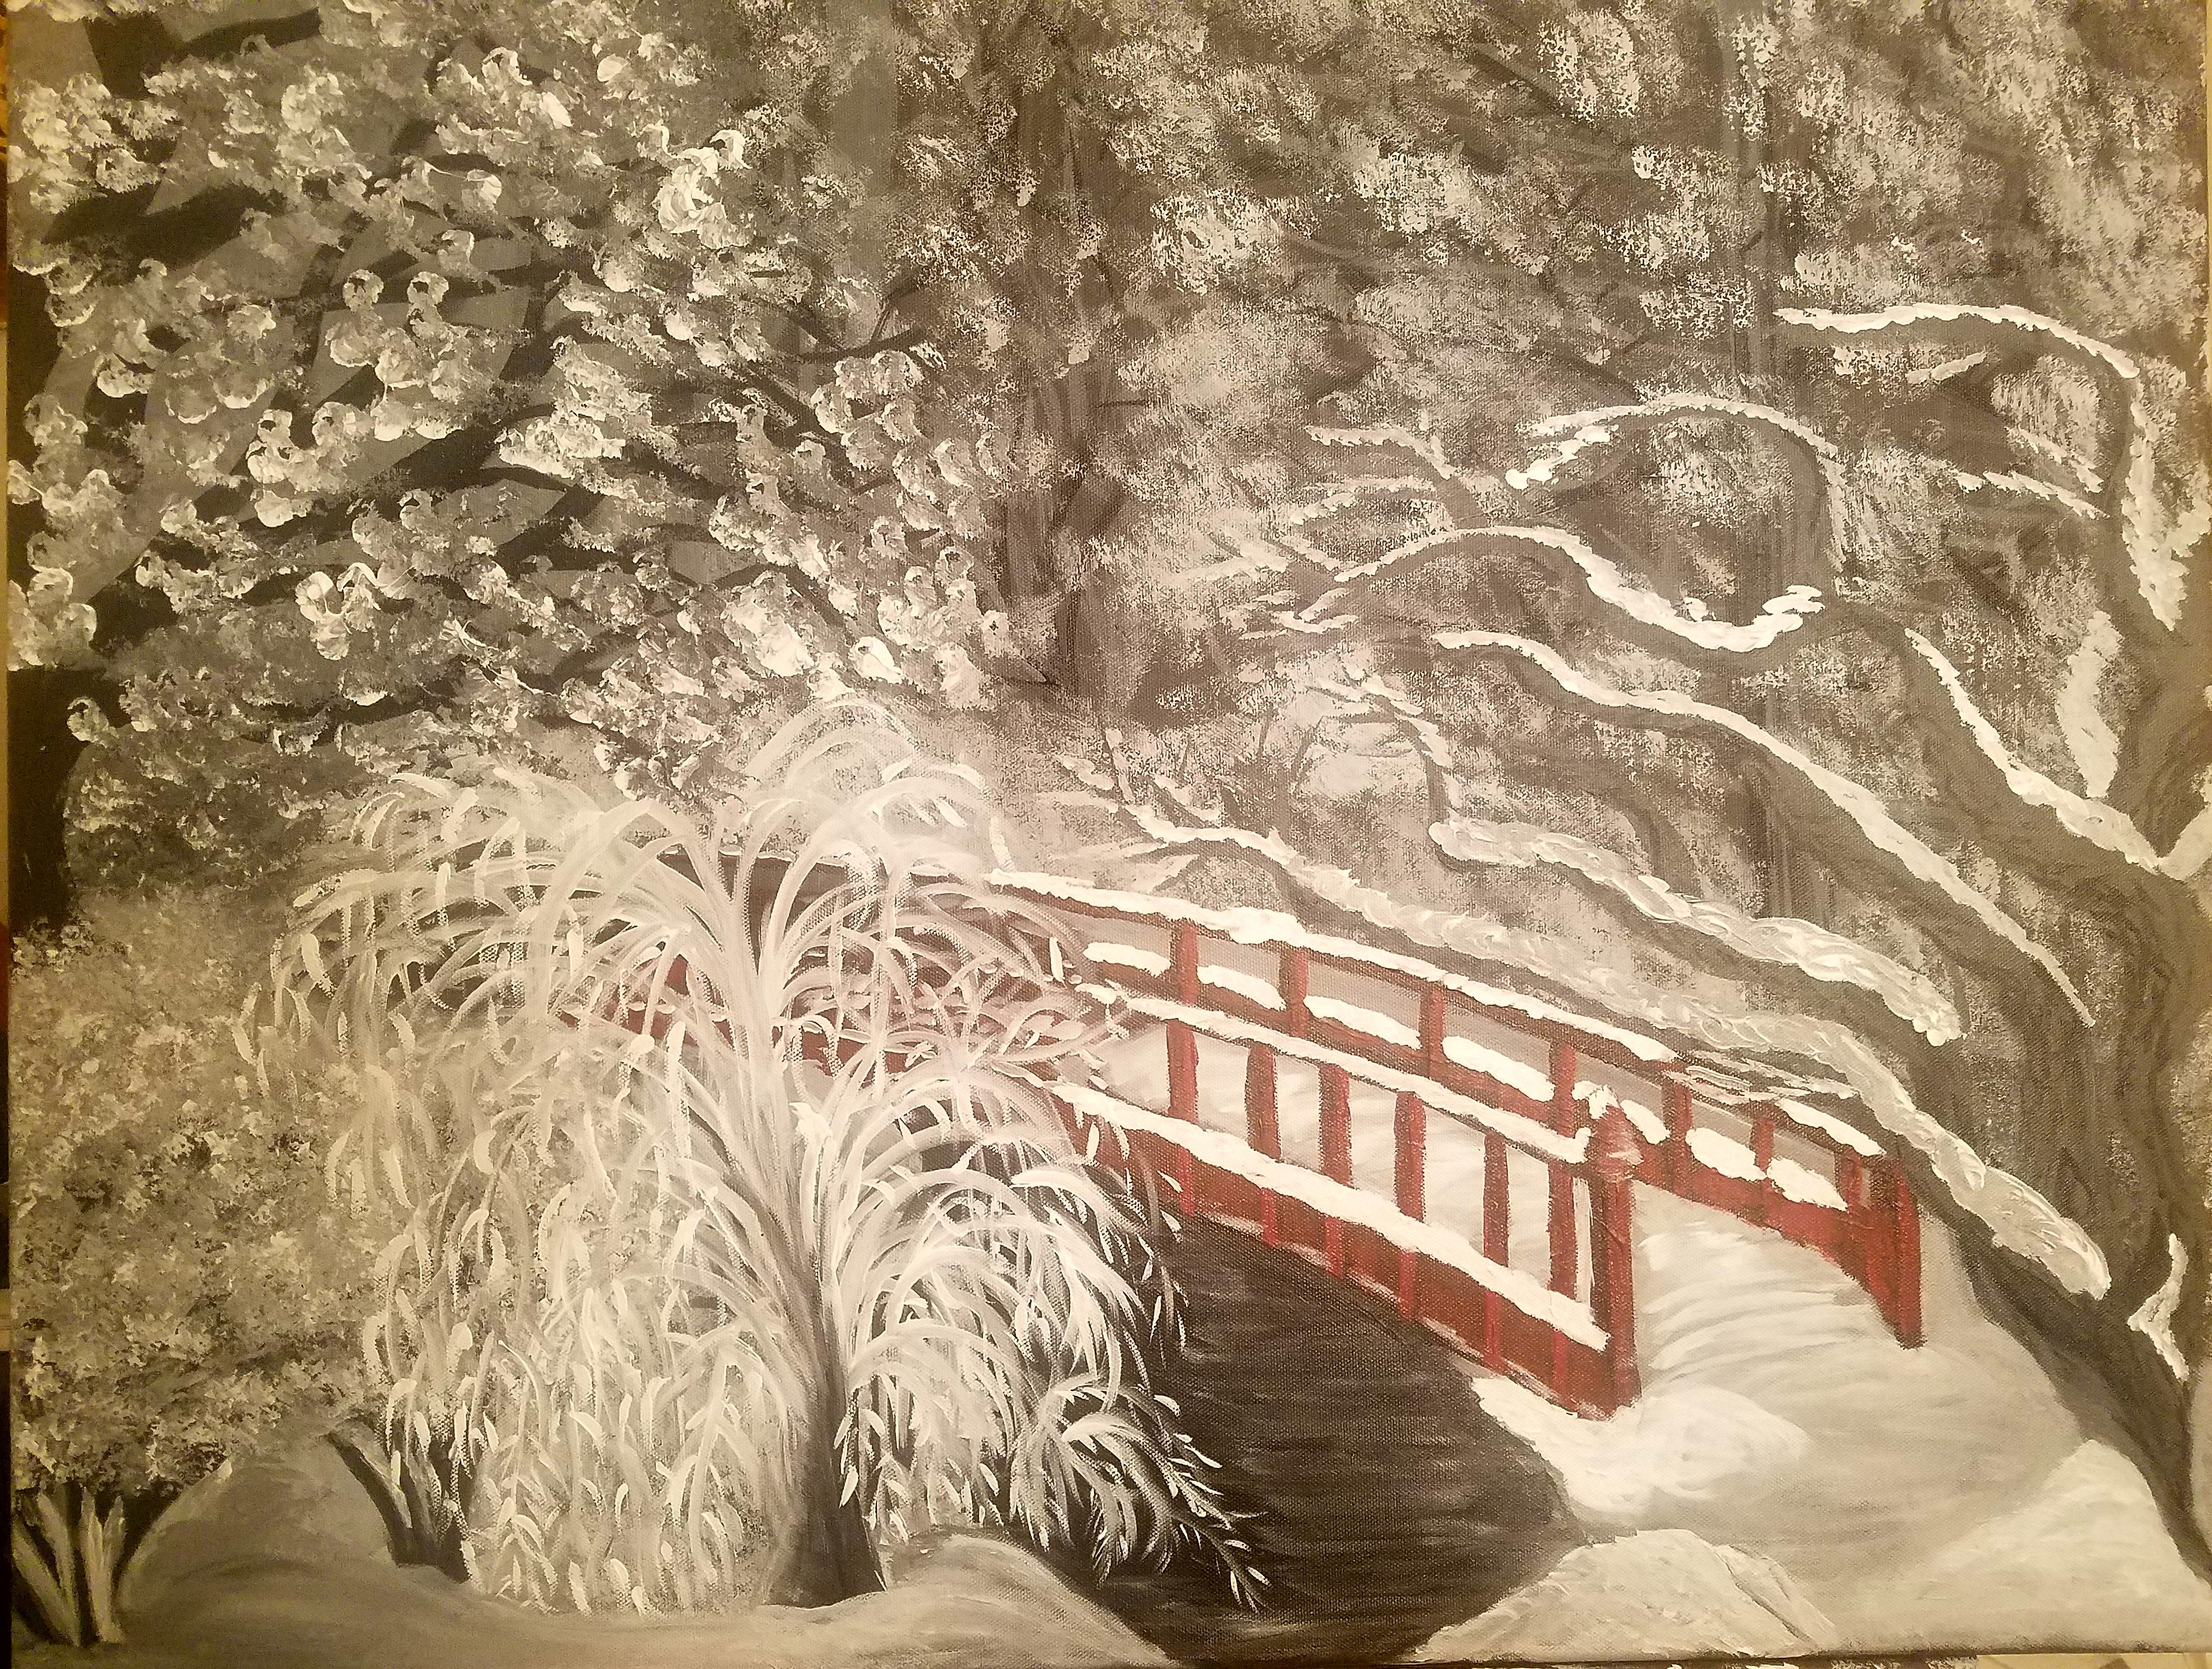 Winter landscape in monochromatic with red highlight